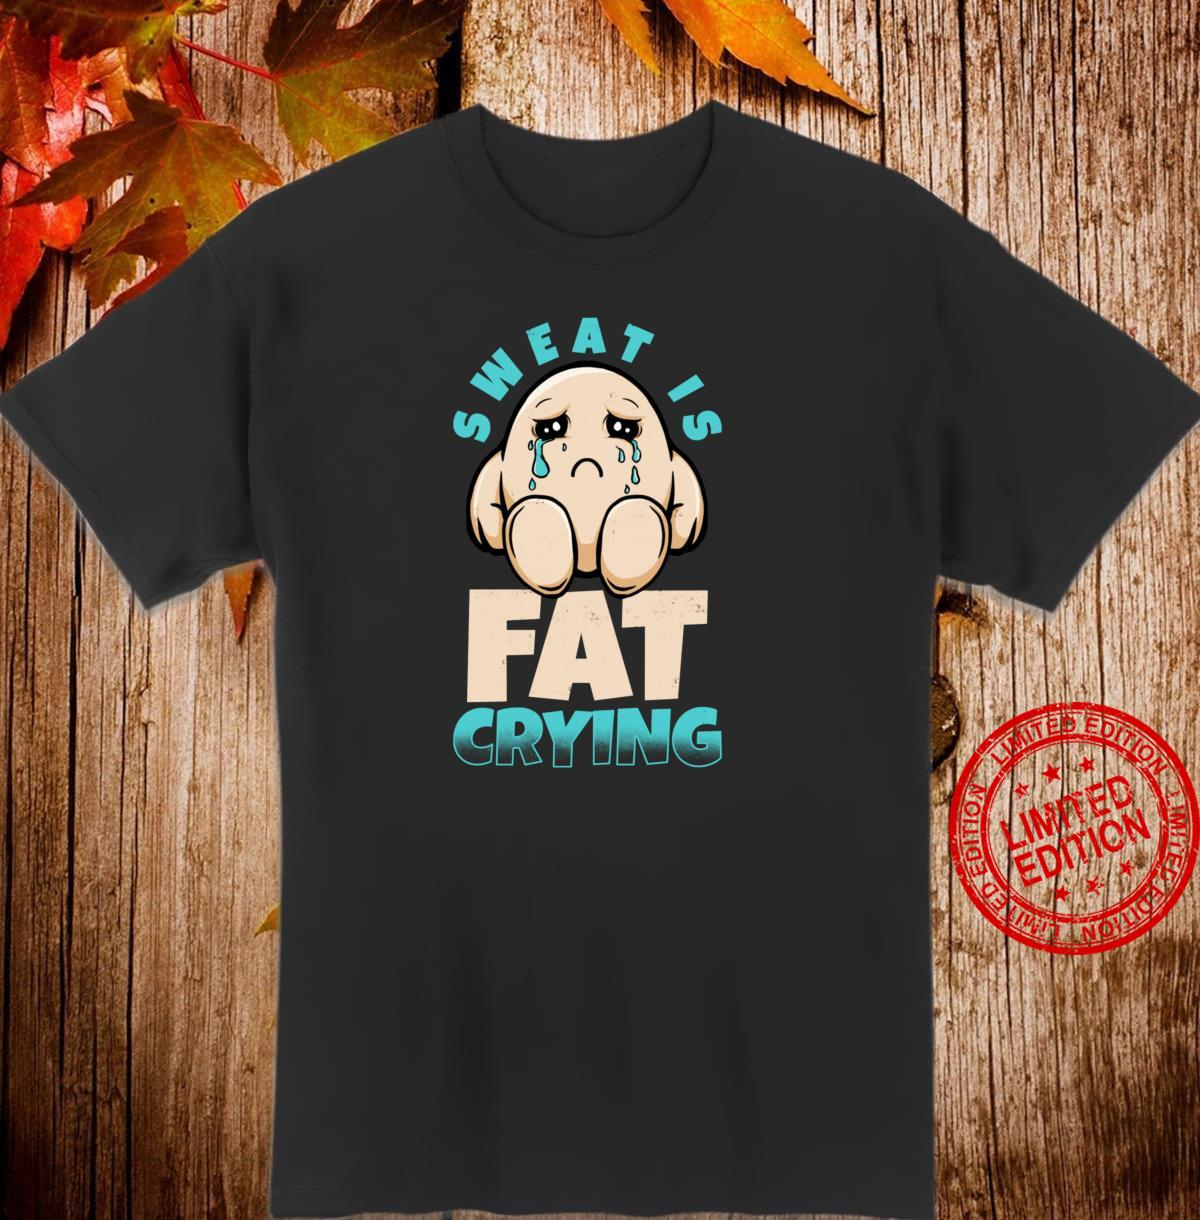 Sweat Is Fat Crying Diet Nutrition Obesity Health Nutrition Shirt